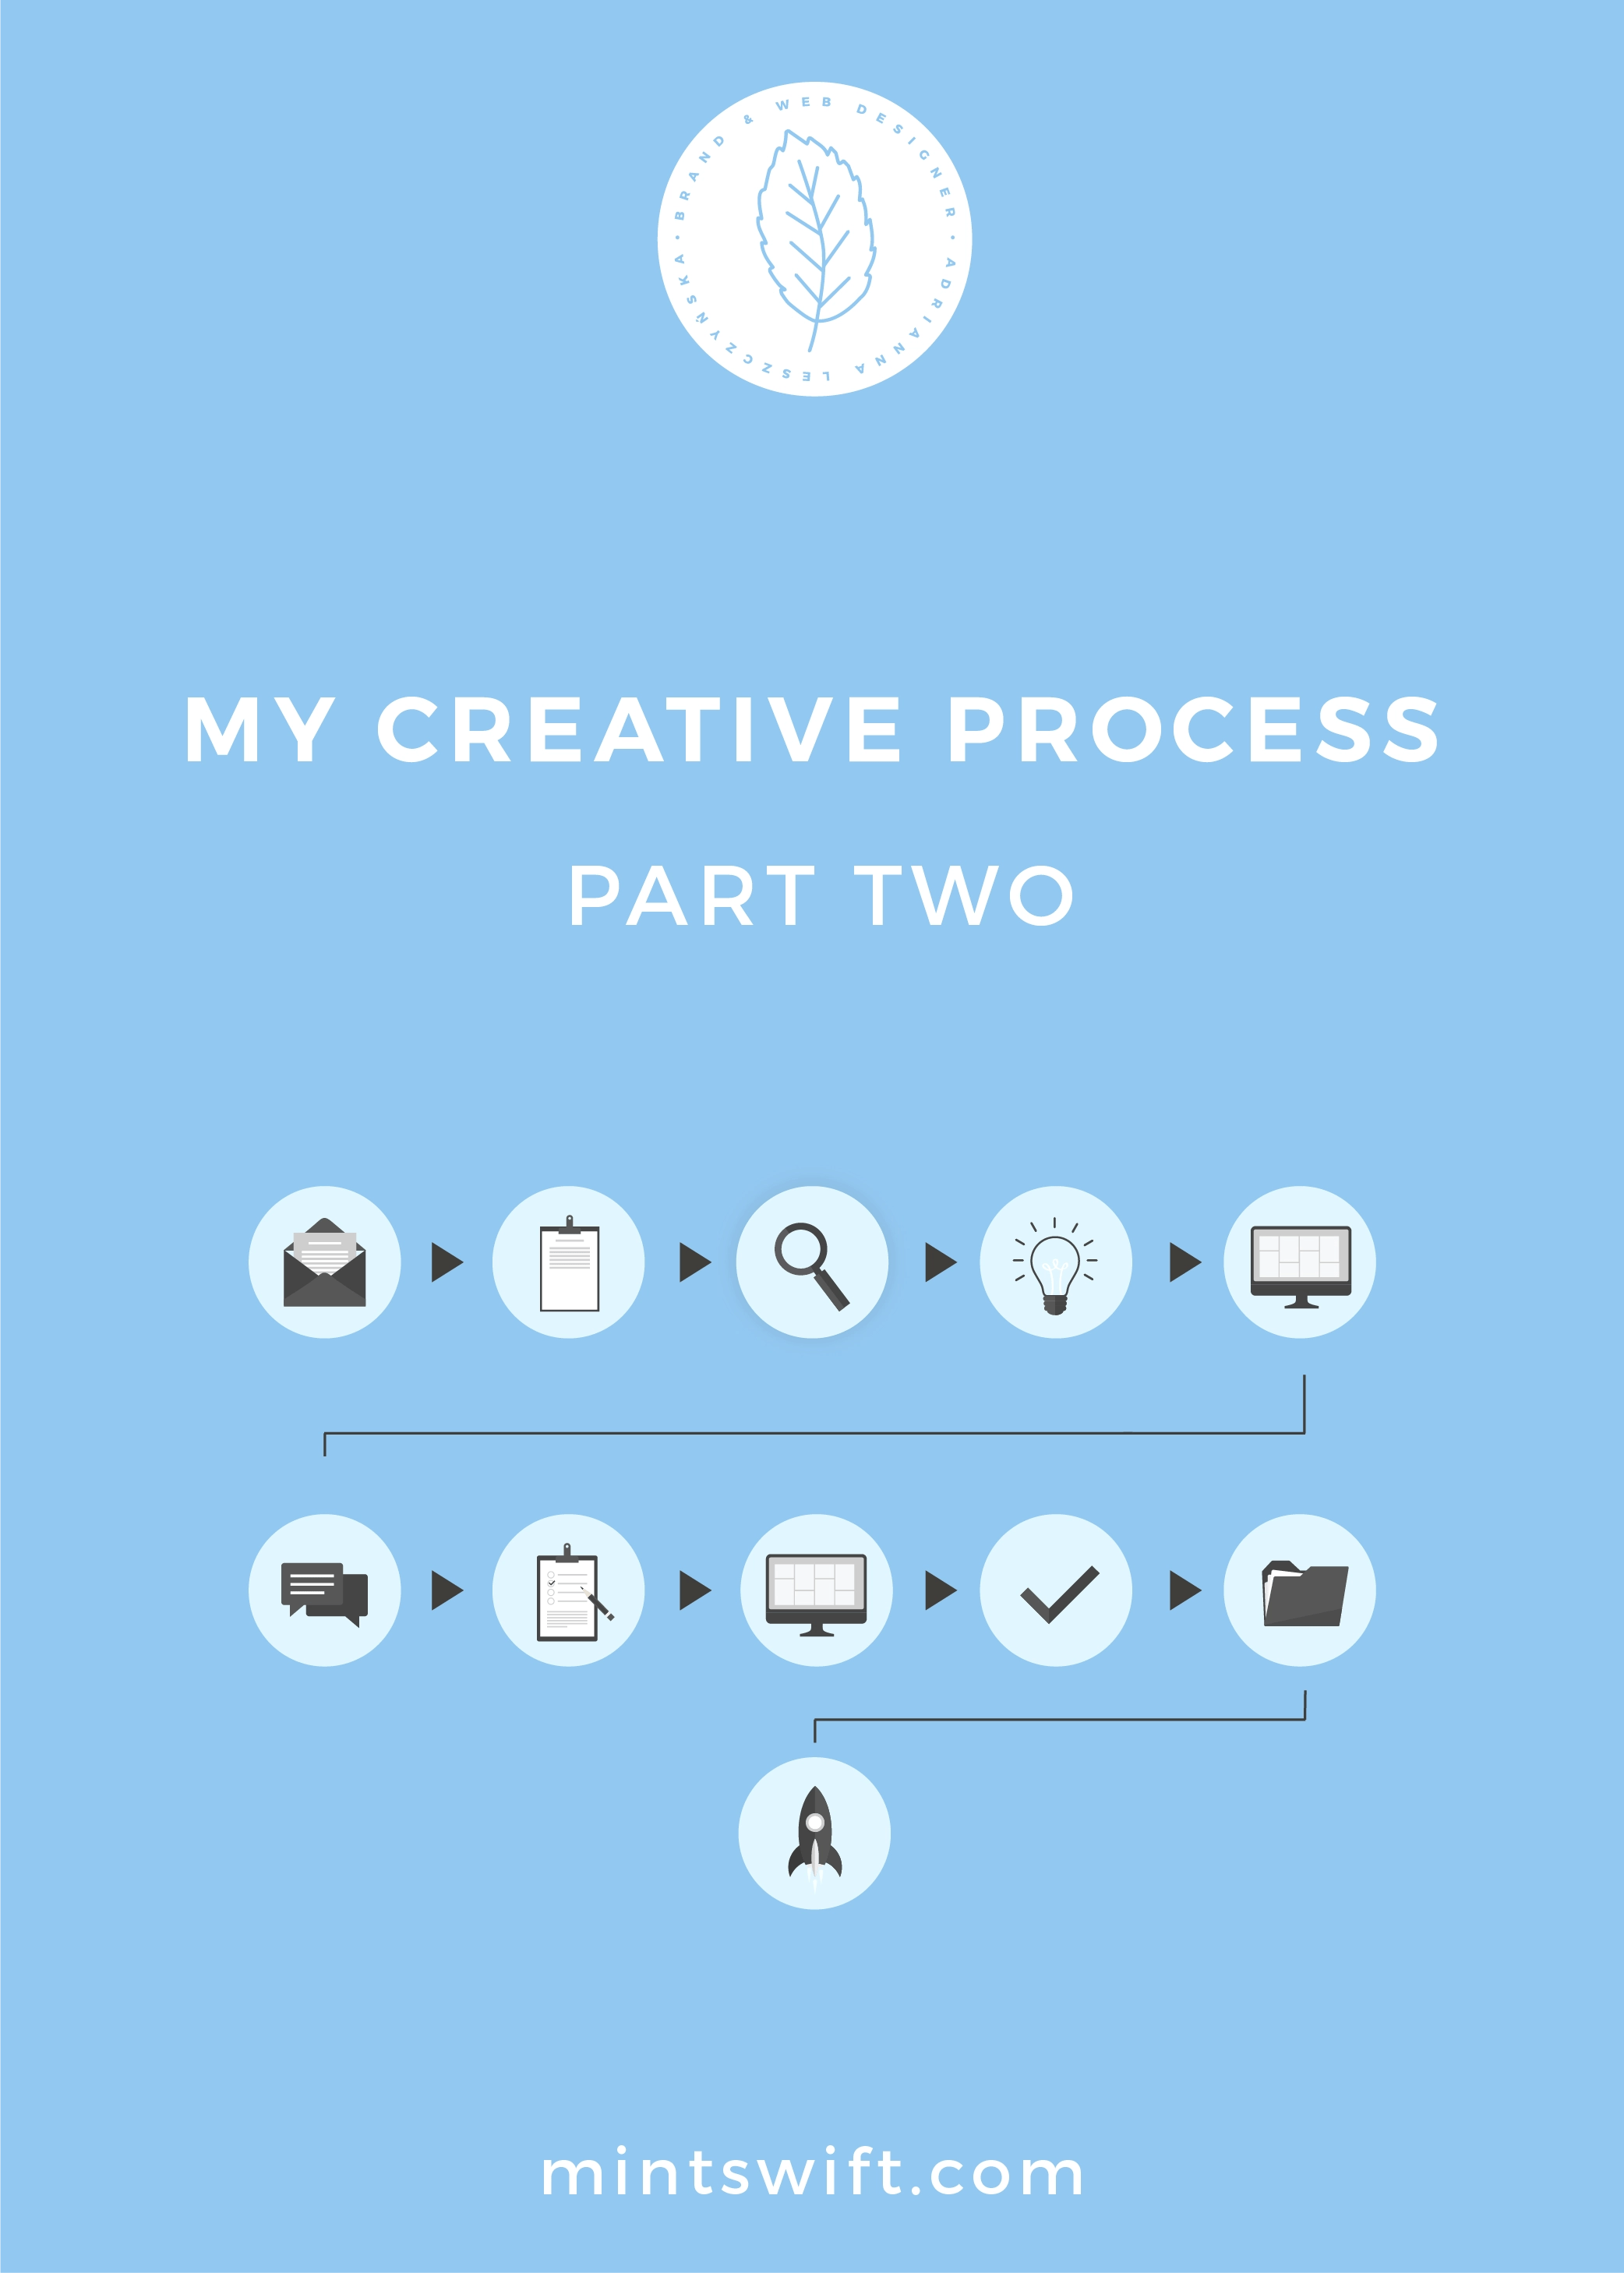 My Creative Process Part Two - MintSwift